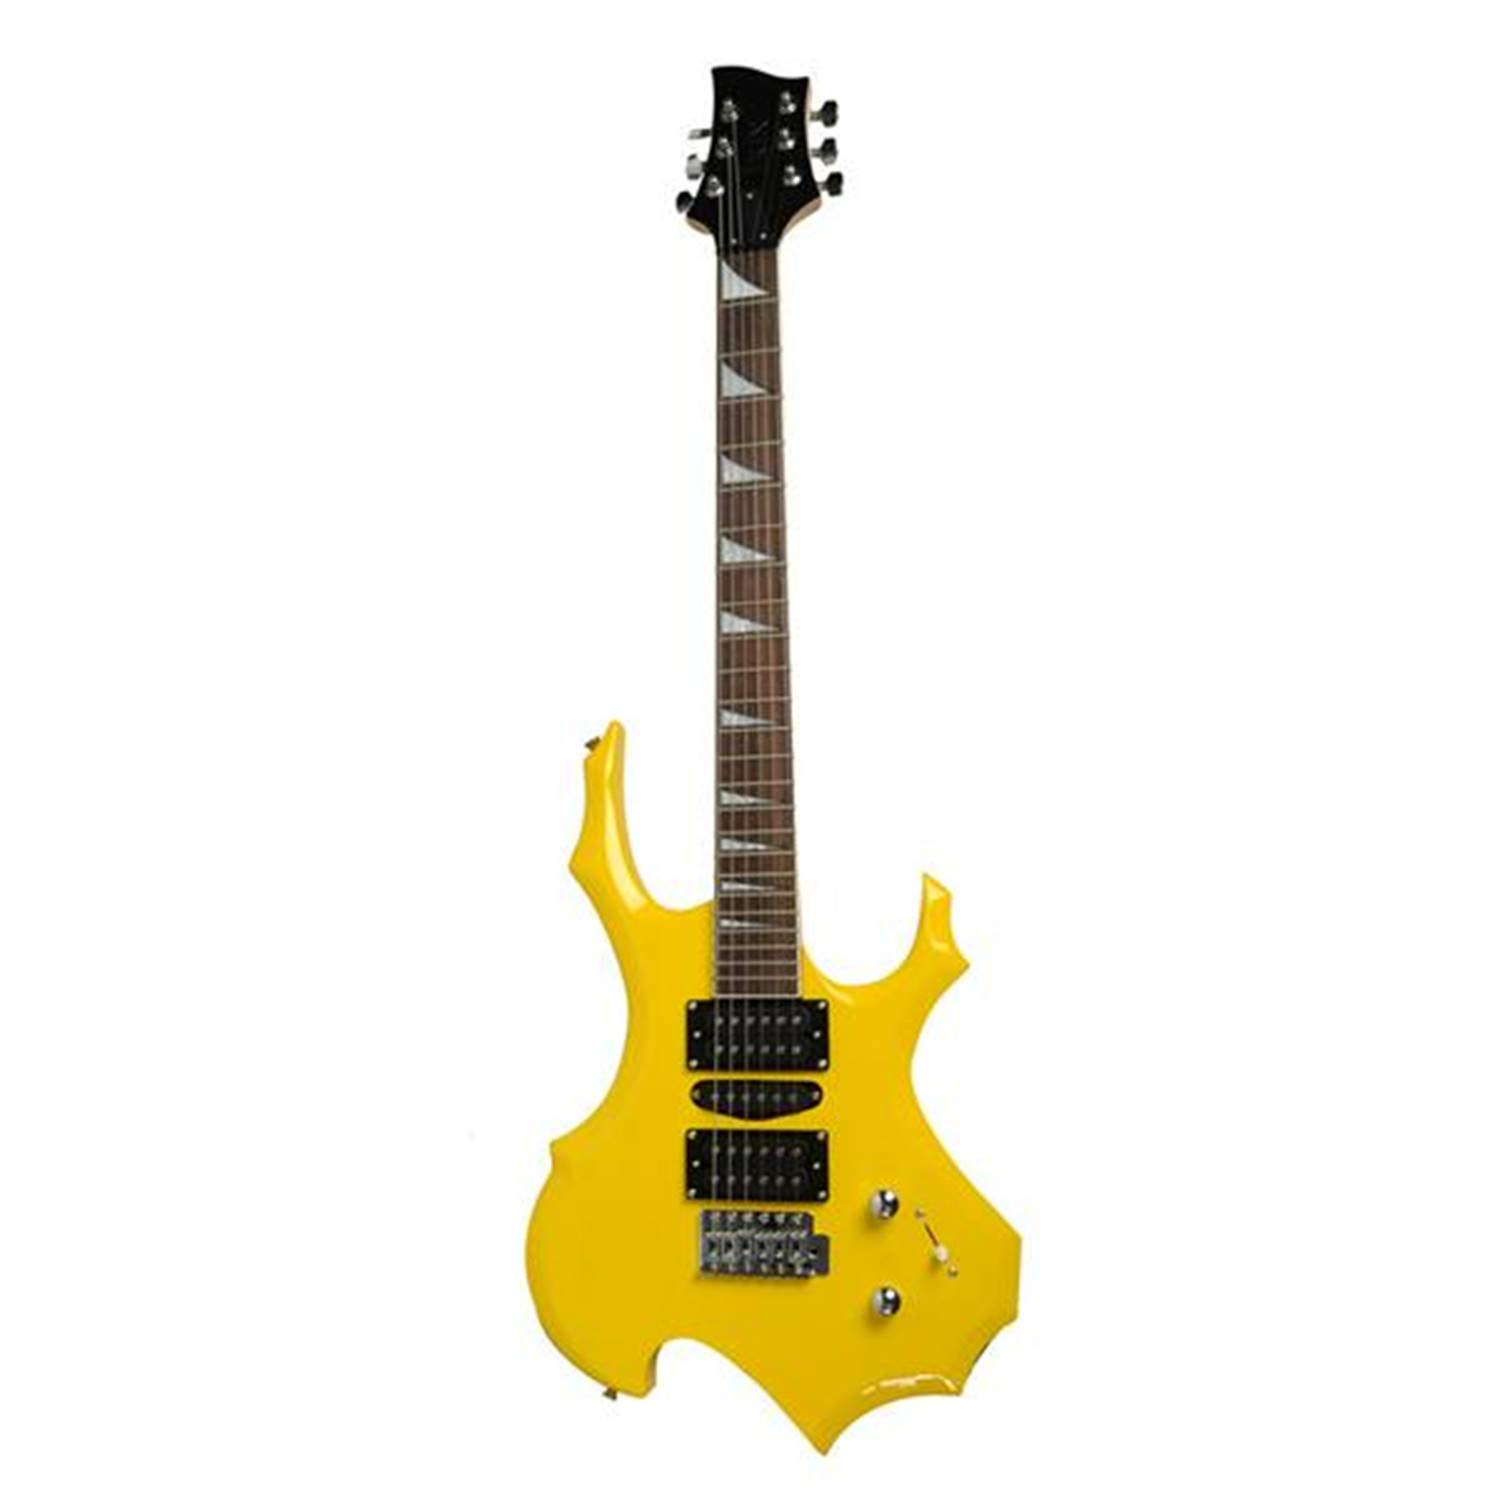 Cheap SHUTAO Professional Flame Type Electronic Guitar Guitar Bag Pick Tremolo Bar Link Cable Set Yellow Black Friday & Cyber Monday 2019